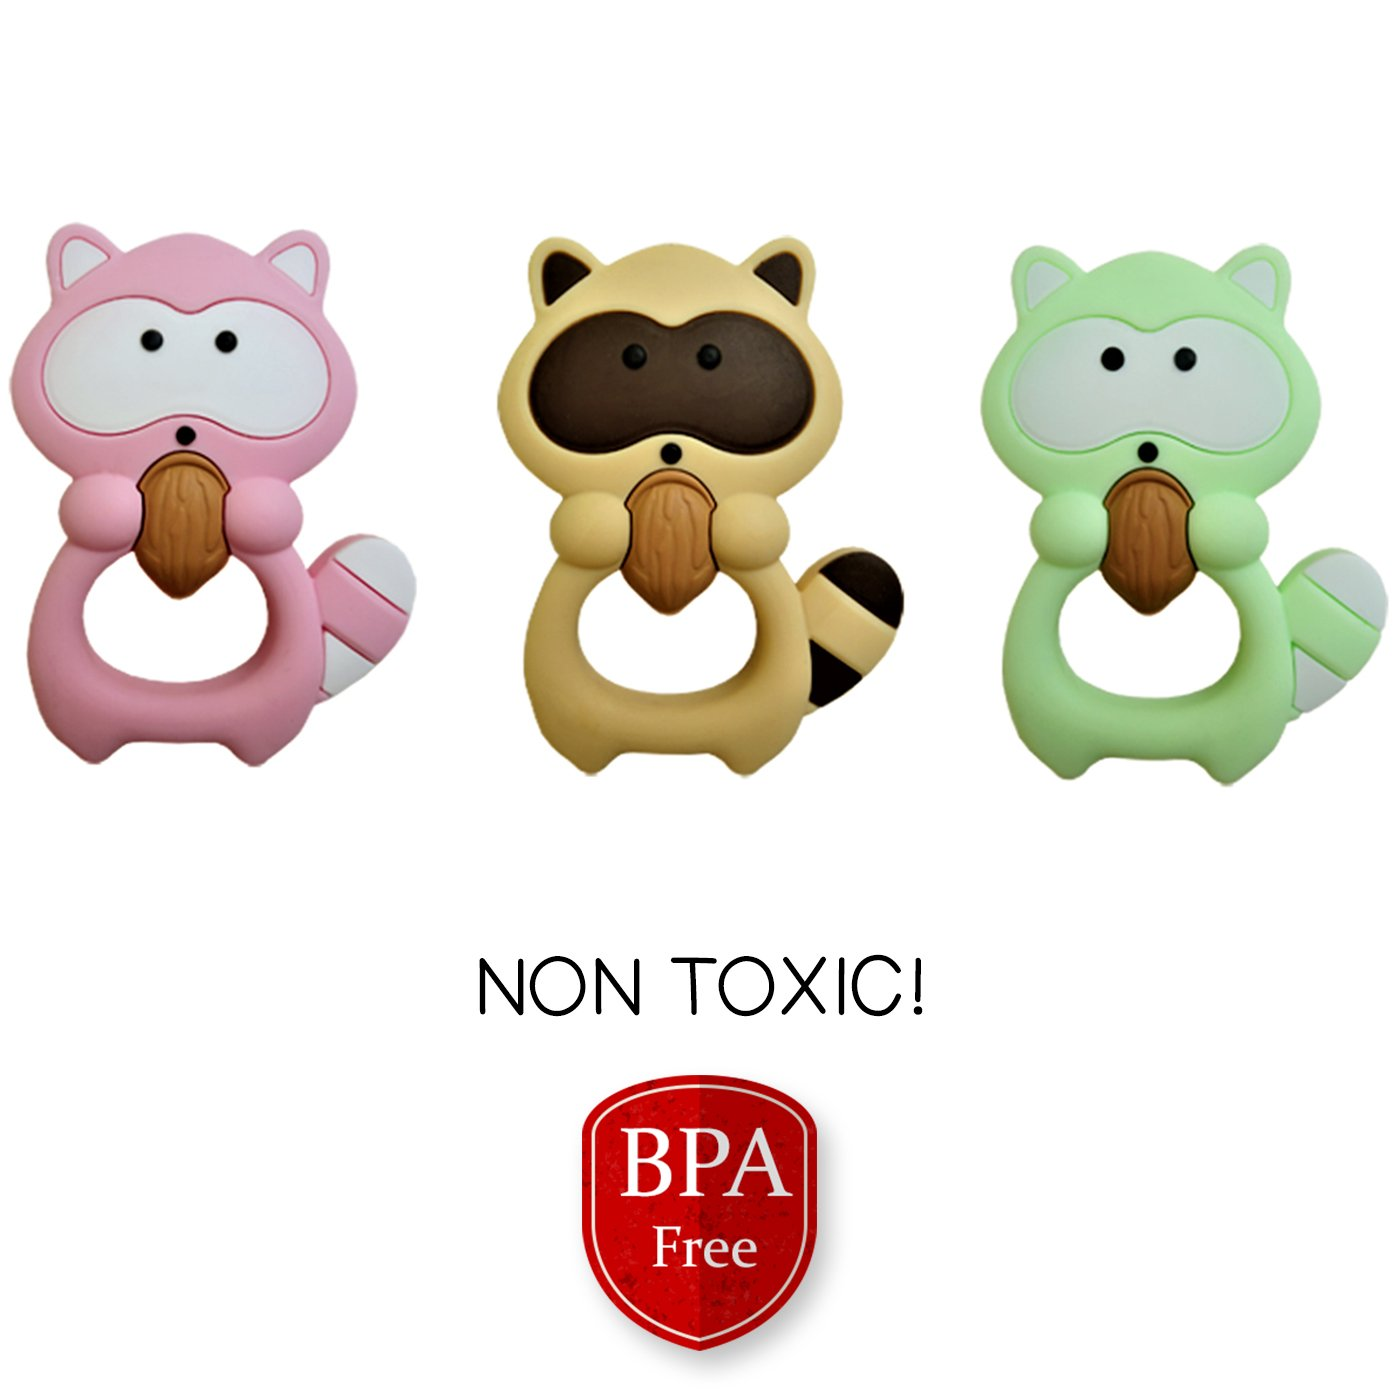 Teething Toys by Babypeanut Binki The Raccoon Baby Teethers Bpa Free 100/% Soft Silicone Teether Toys for Babies Pink Moms Highly Recommend Freezer Friendly